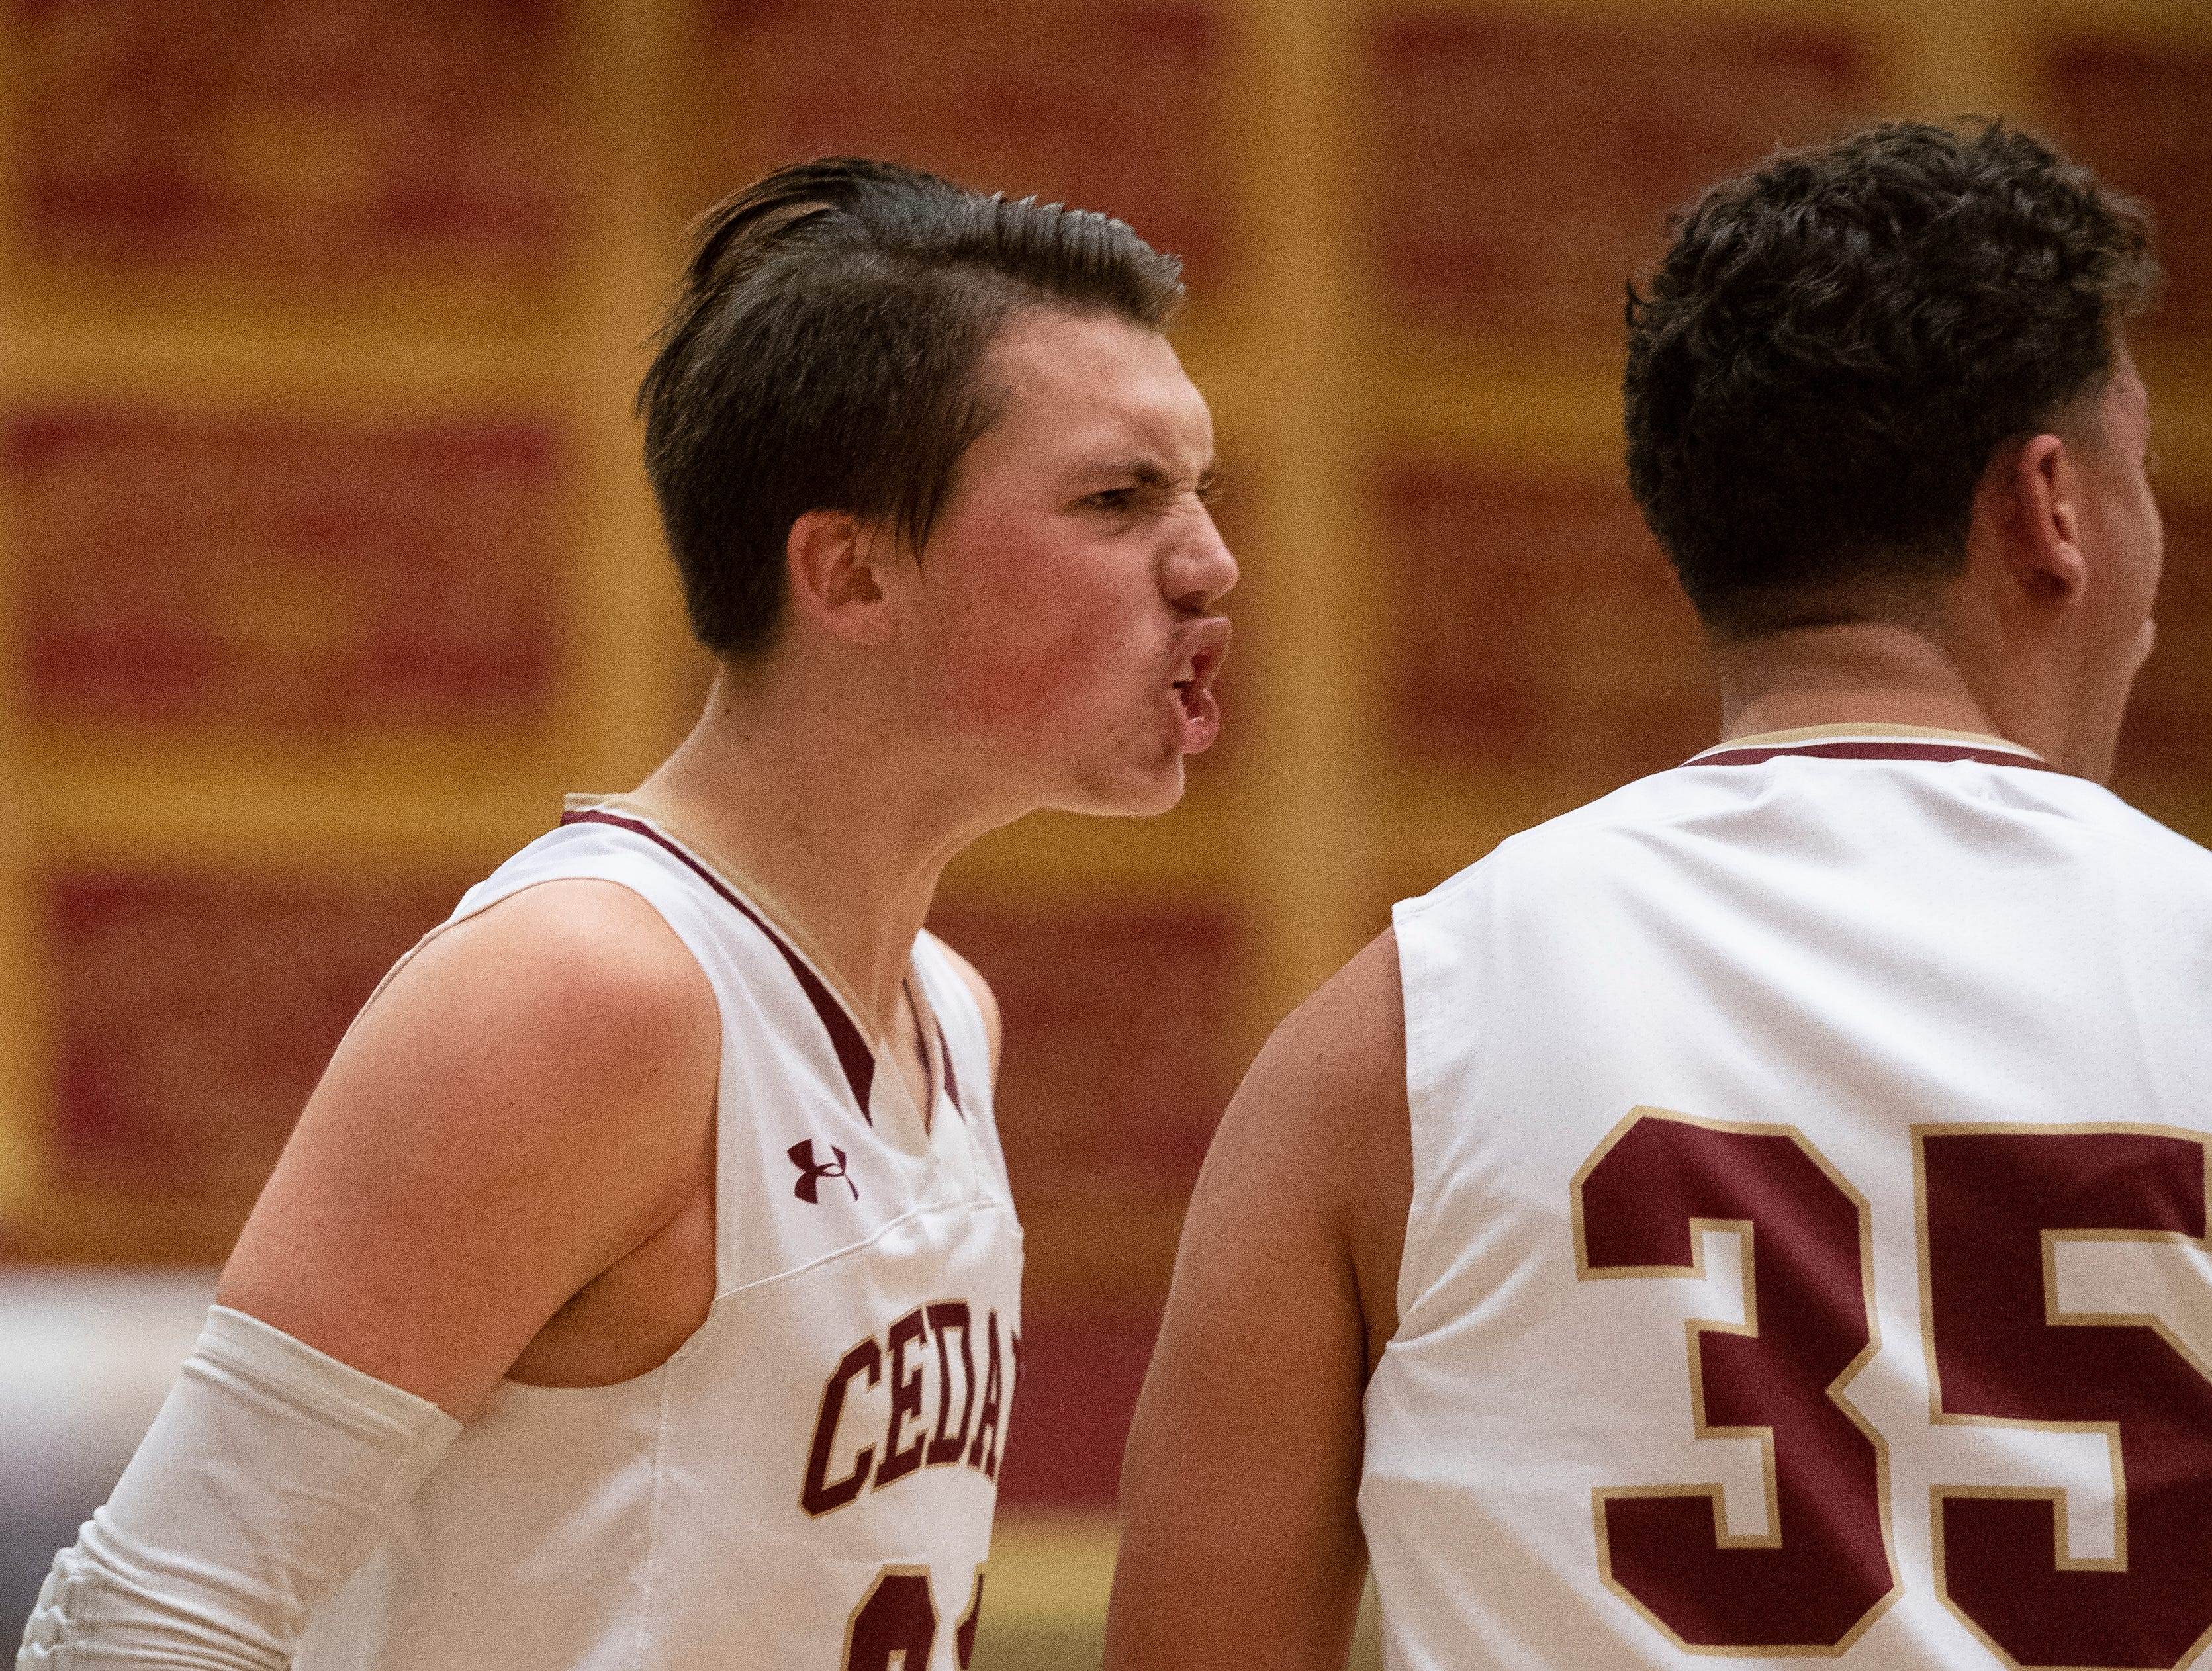 Cedar High senior Tanner Eyre (21) gets psyched about a score against Canyon View at a home game Jan. 11, 2019. Canyon View won 61-56.